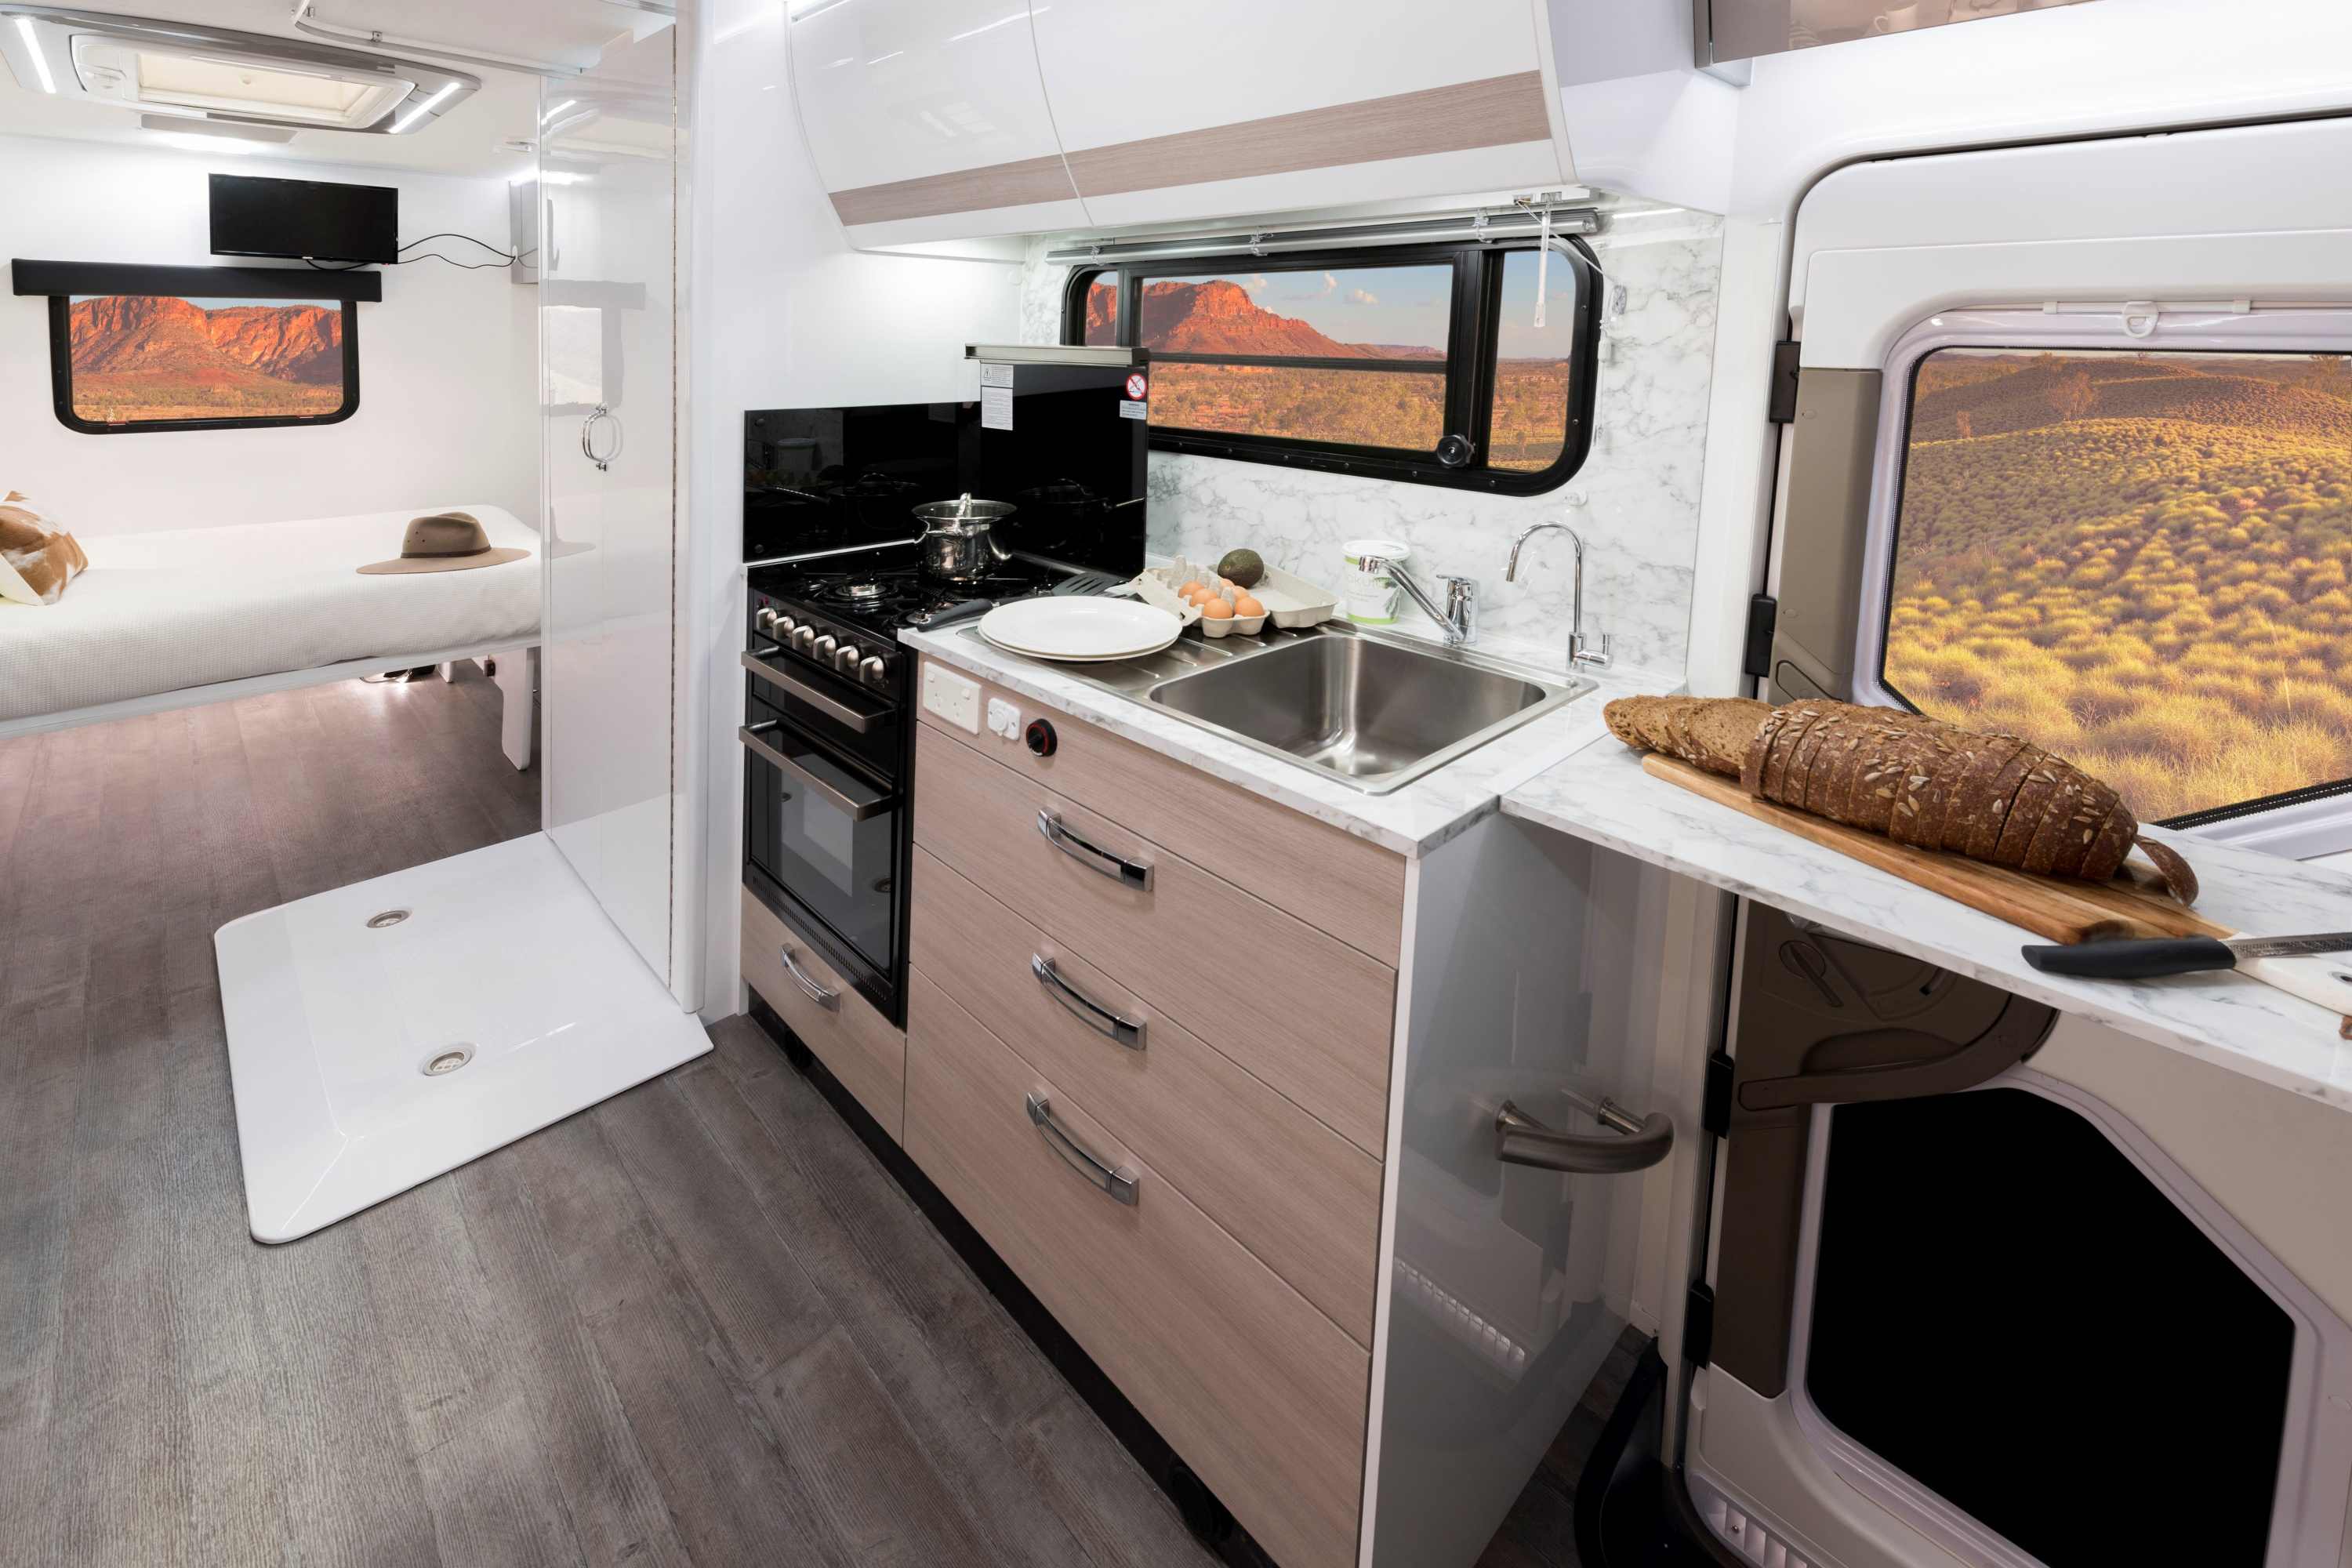 2019 Esperance WheelChair friendly kitchen